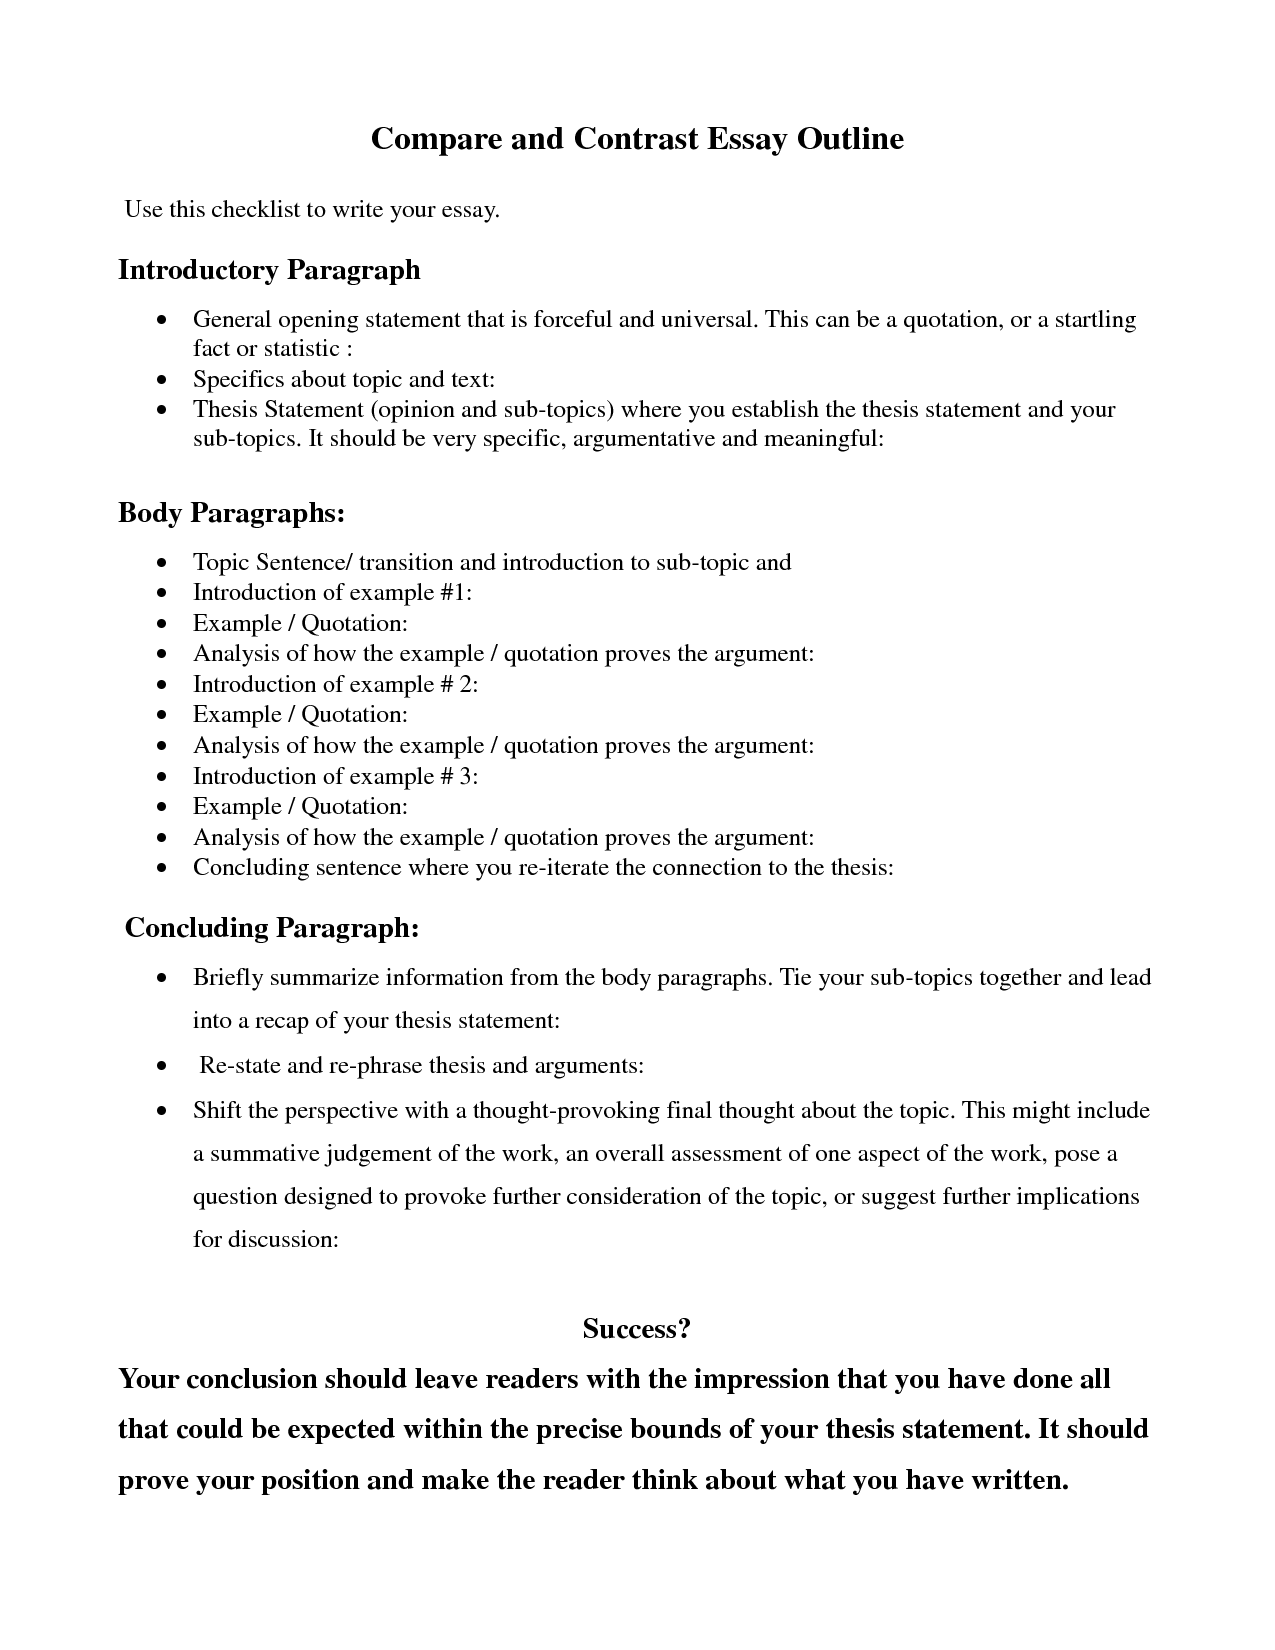 Essays Topics For High School Students  American Literature Essay Topics also Essays About Business Sample Introduction Paragraph Comparison Essay  How To  How To Write An Application Essay For High School